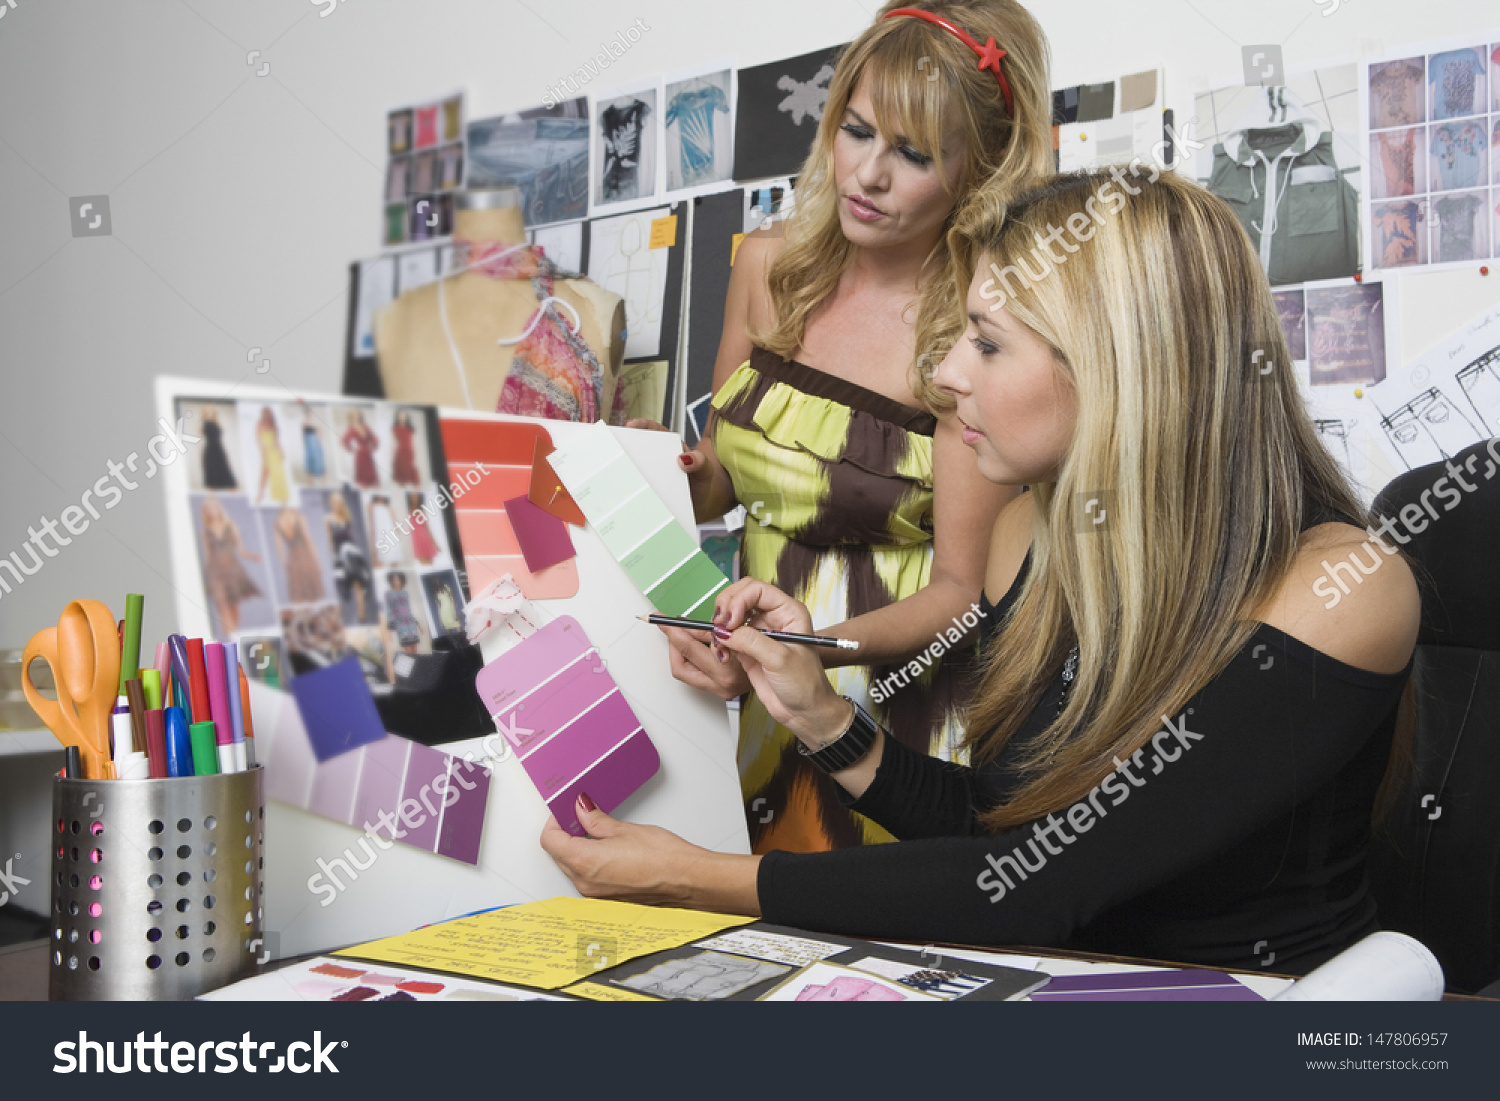 Female Fashion Designers Working At Desk Stock Photo ...